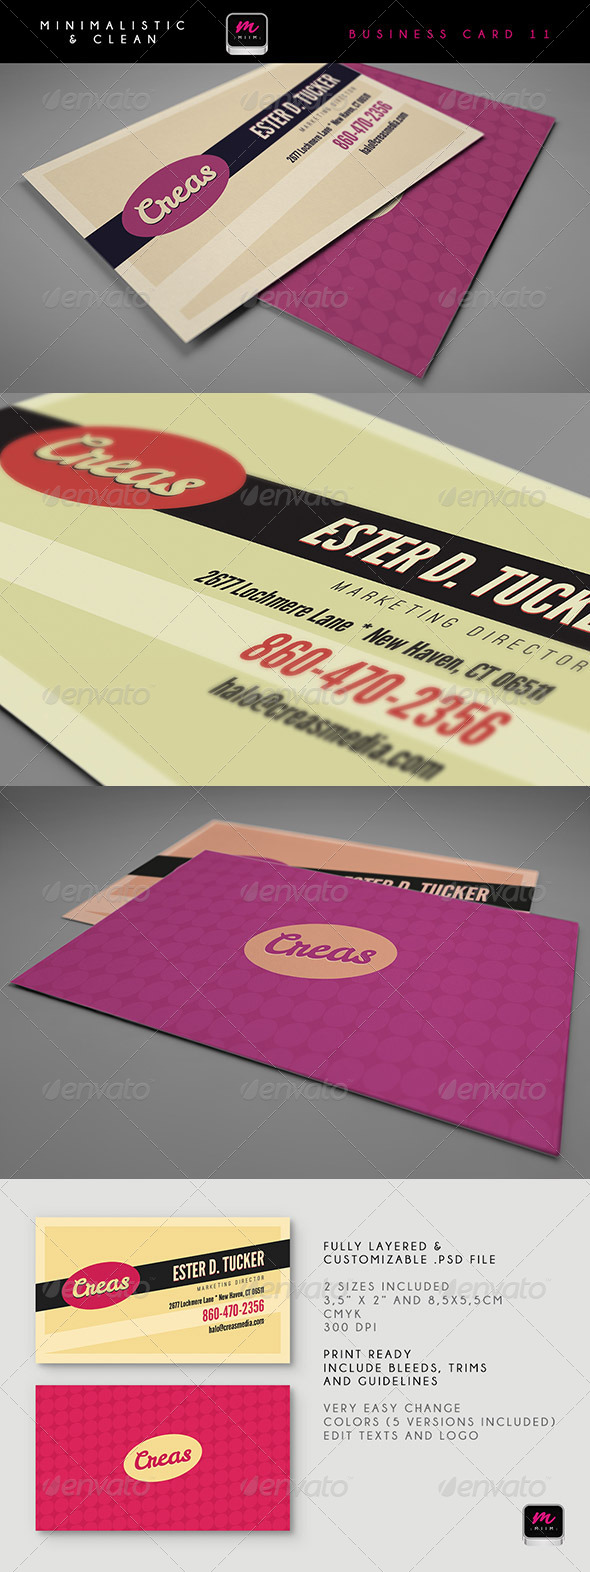 Clean Business Card Template 11